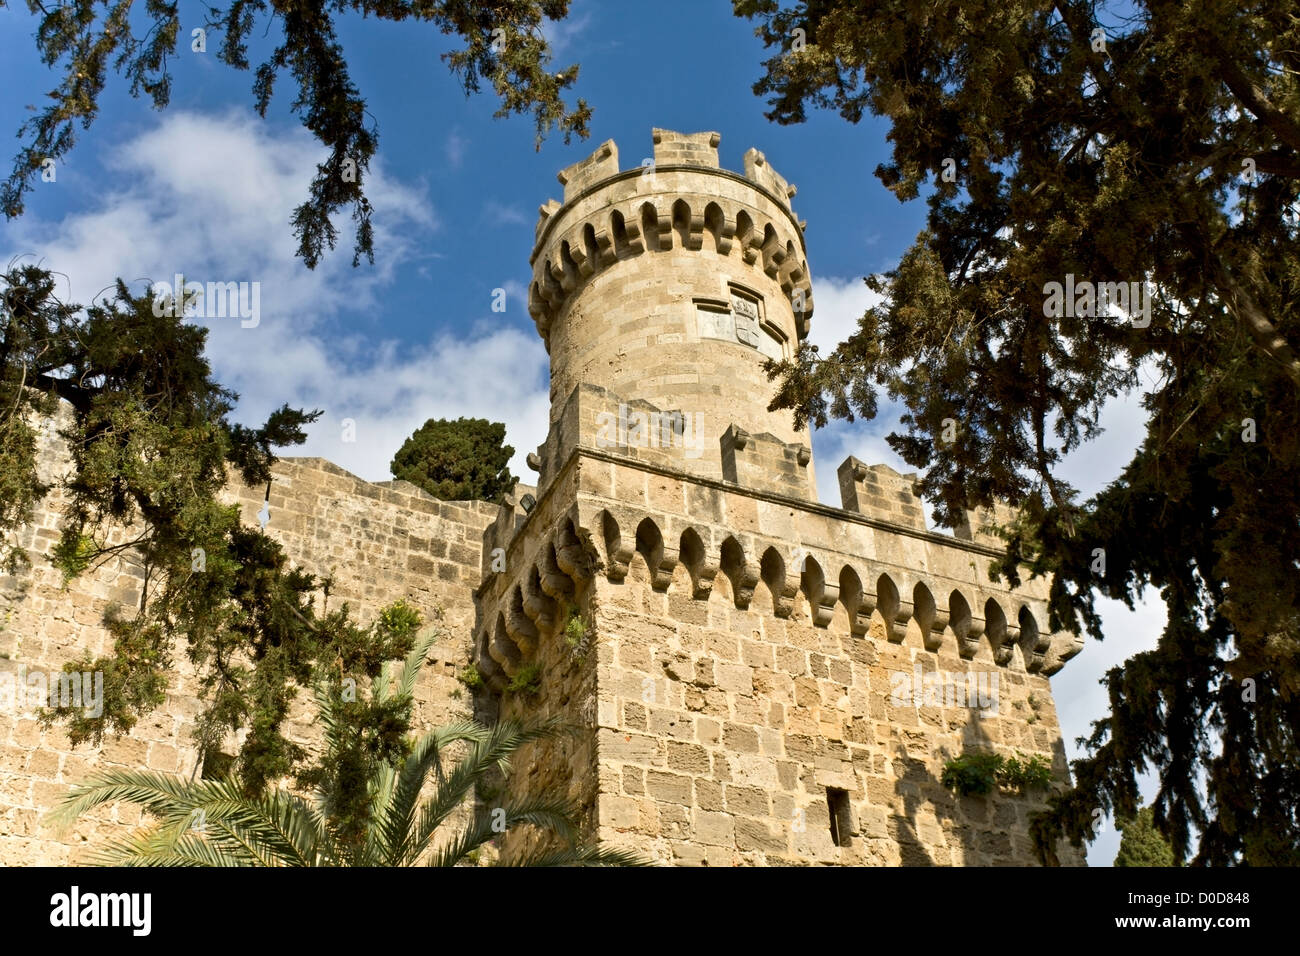 Castle of the Knights at Rhodes island, Greece - Stock Image